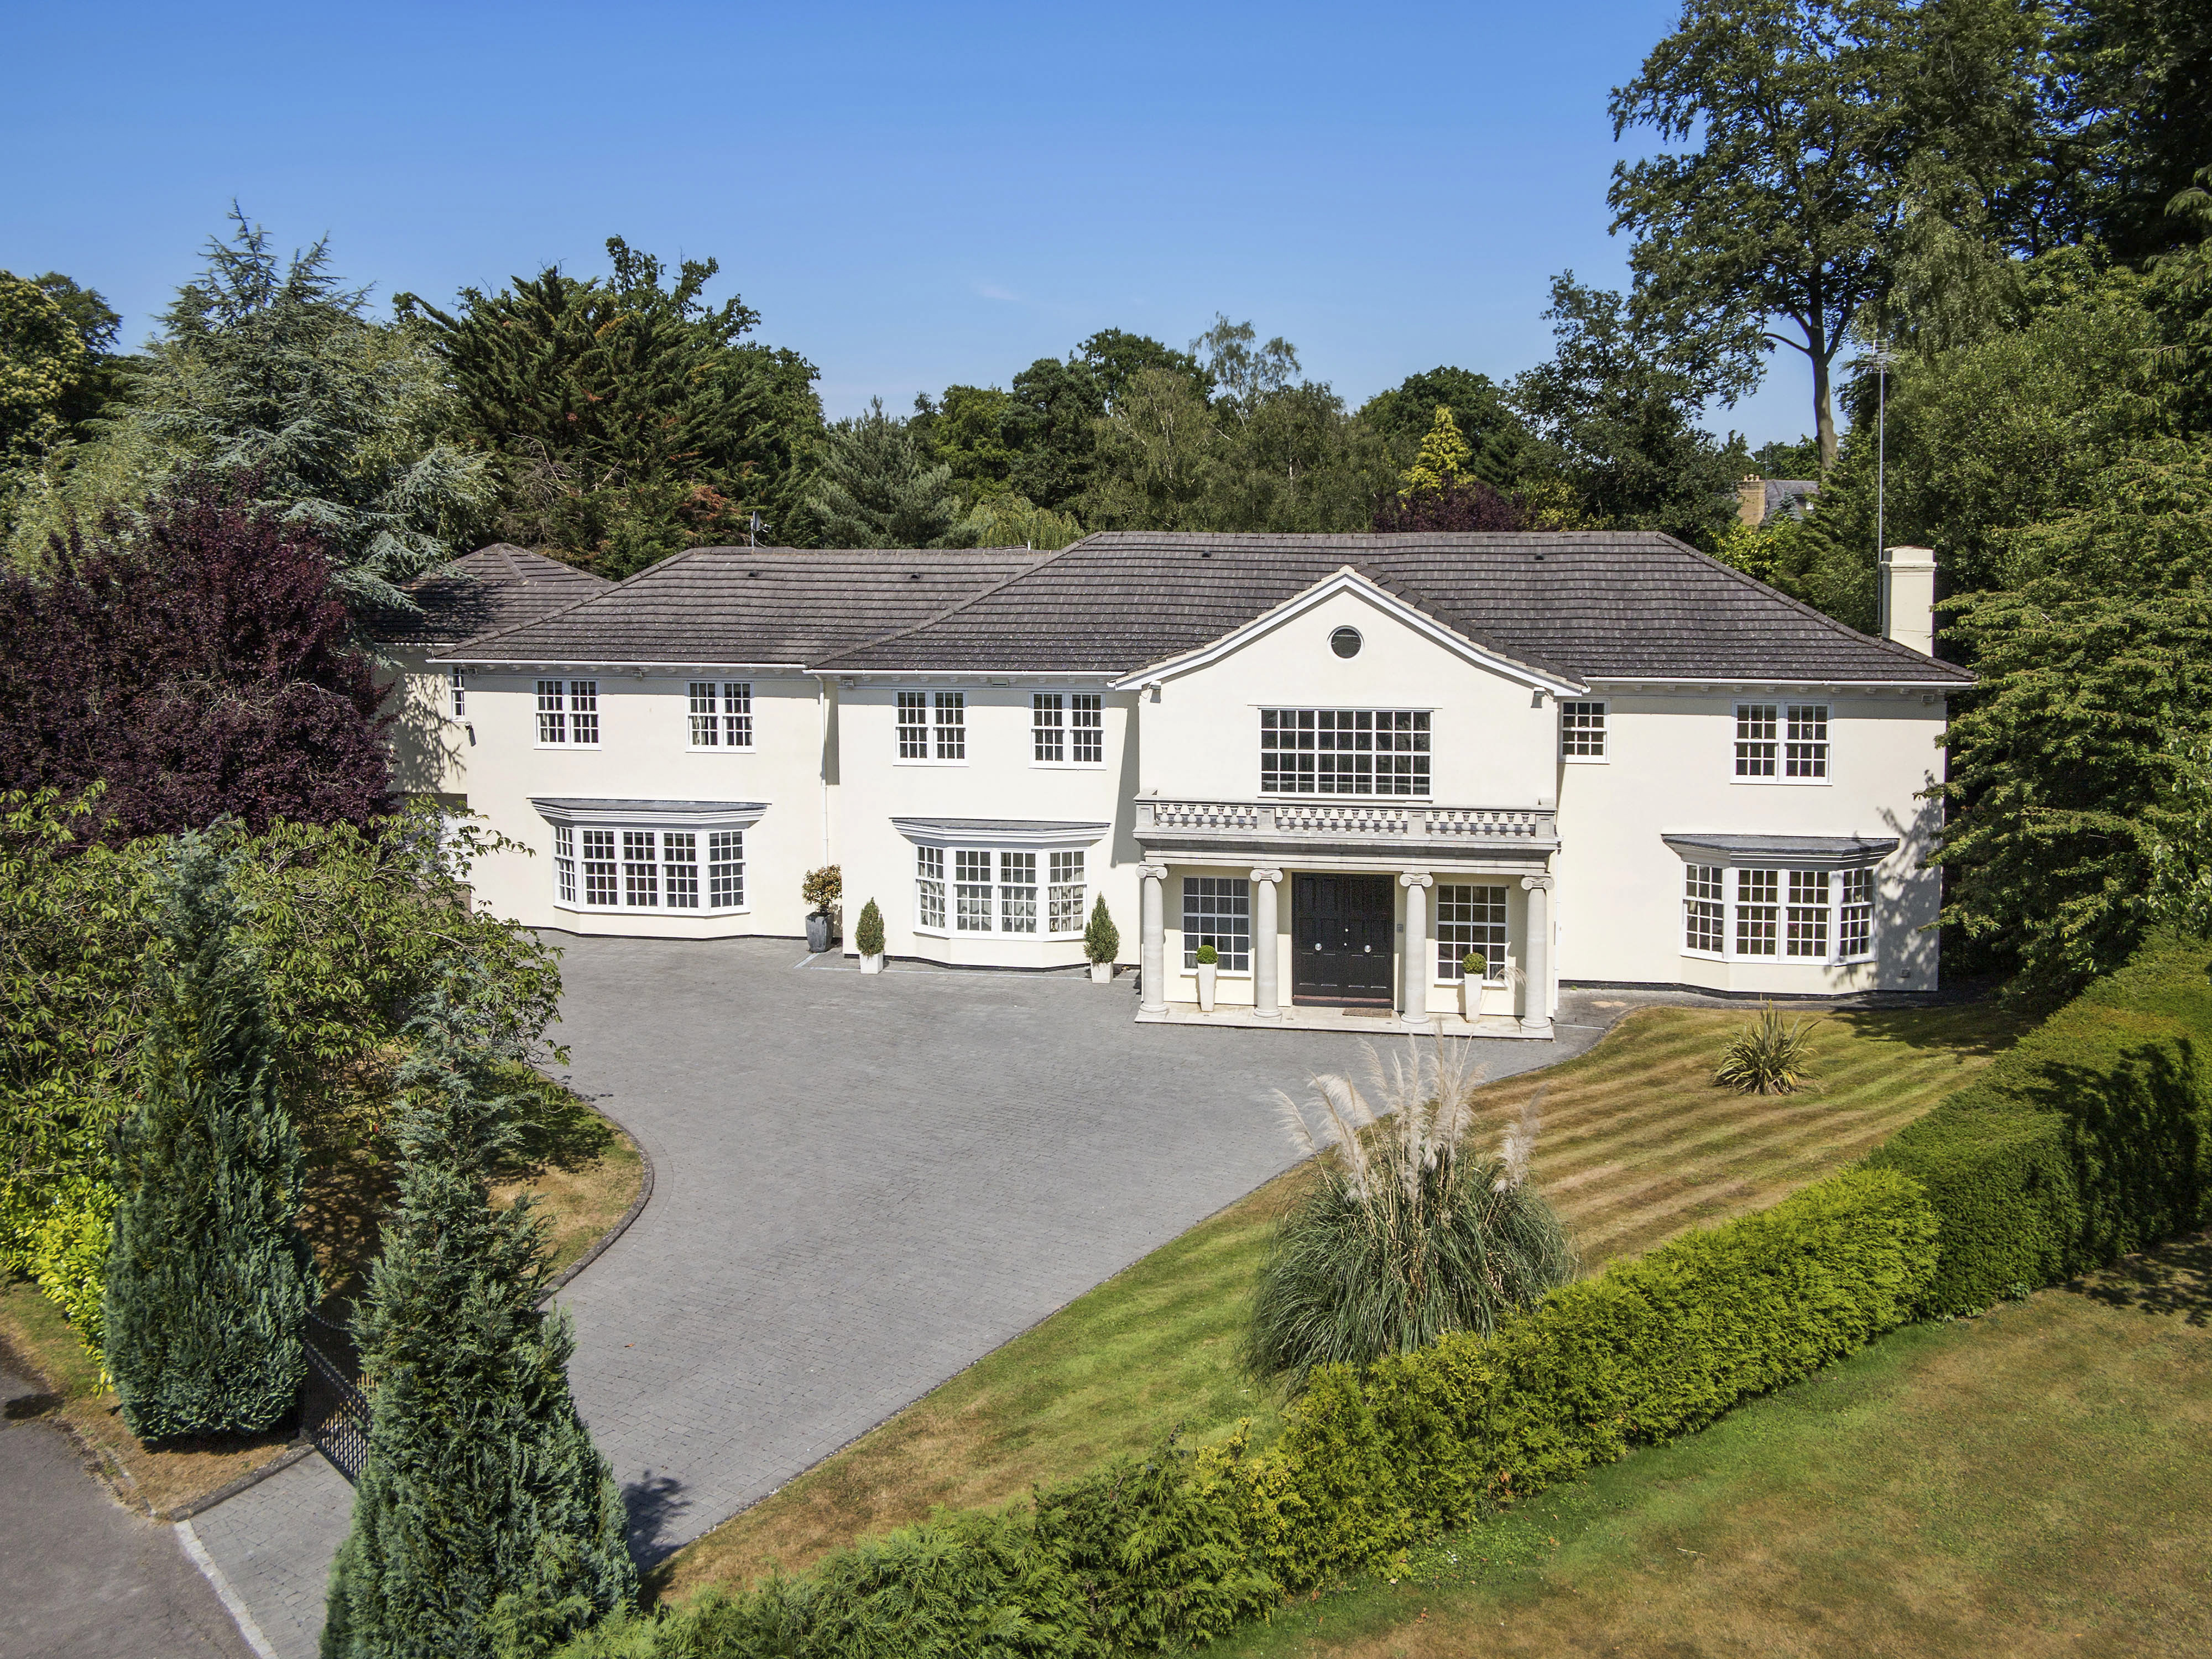 Single Family Home for Sale at Ascot, Berkshire Kier Park Ascot, England, SL57DS United Kingdom